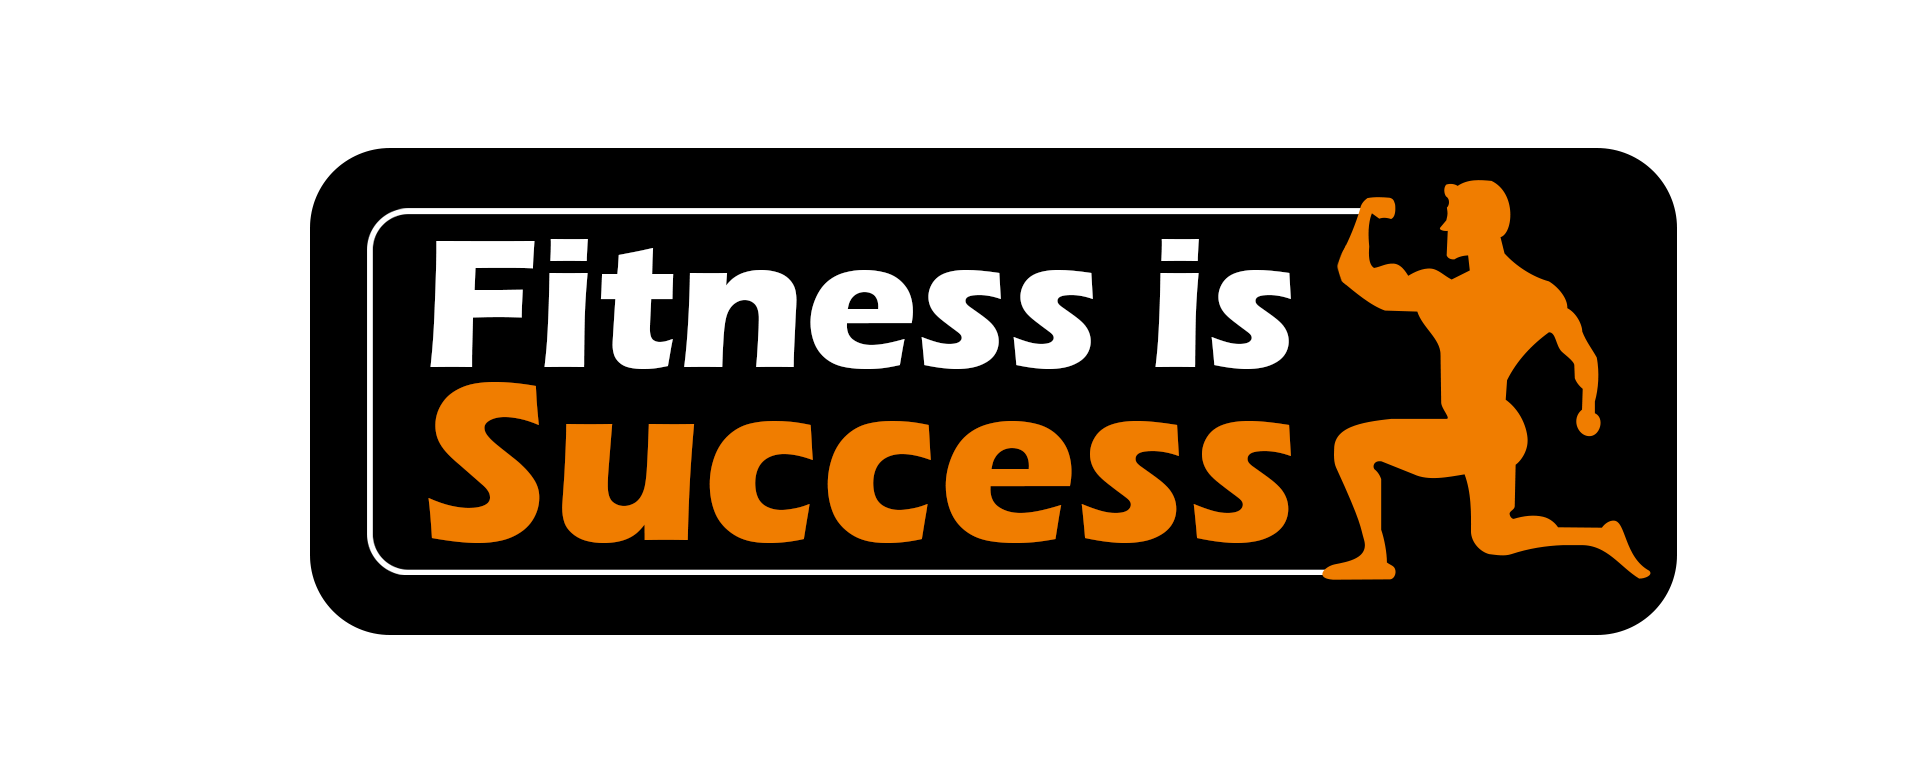 Fitness success png. Is fitnessissuccess de